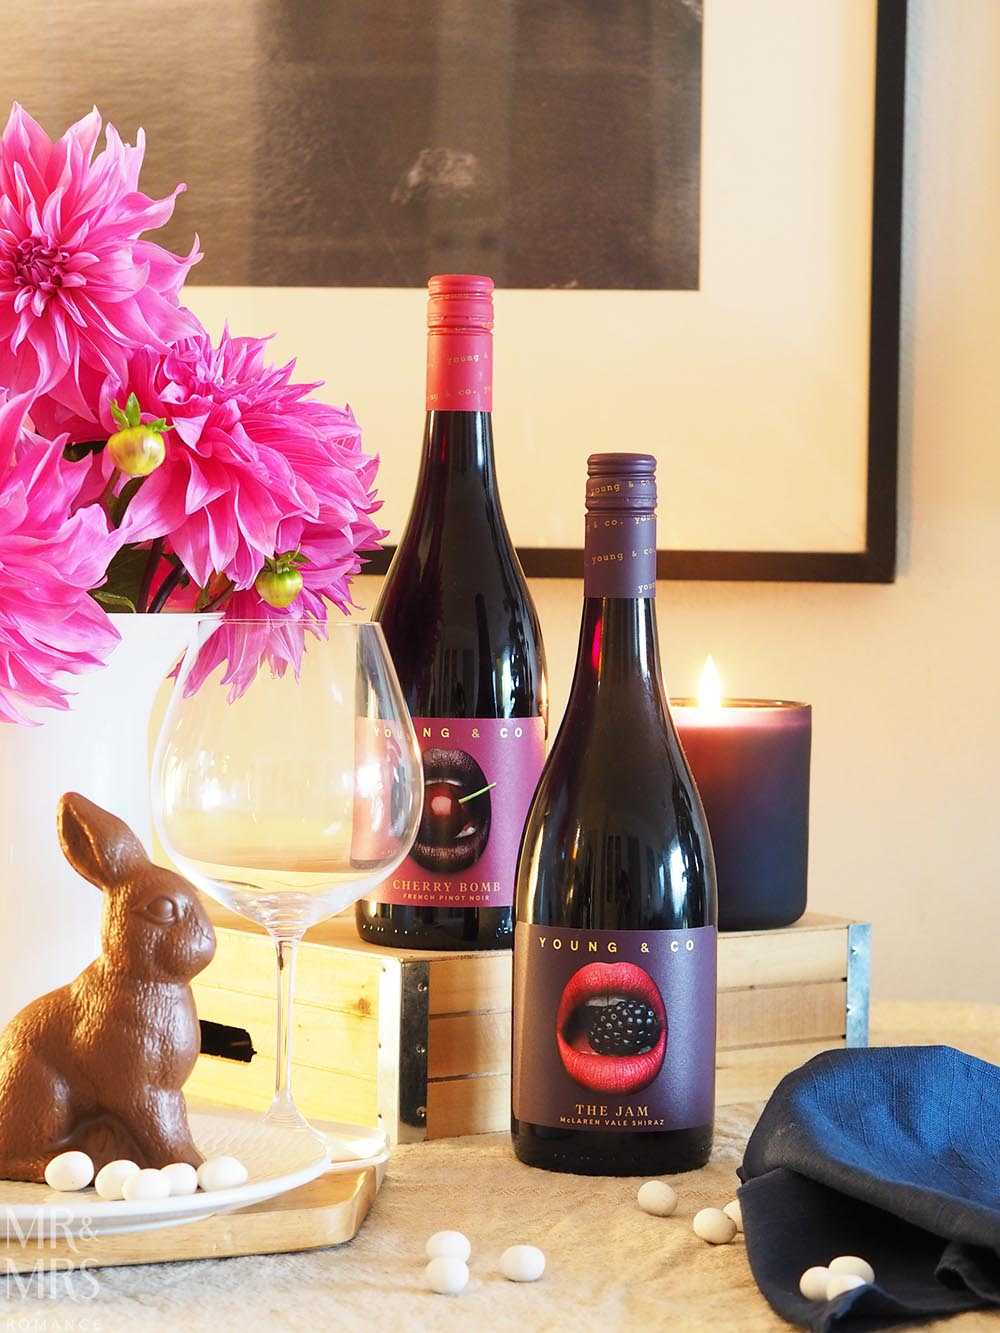 Wine for Easter - Young & Co Wines - Cherry Bomb French Pinot Noir The Jam Shiraz